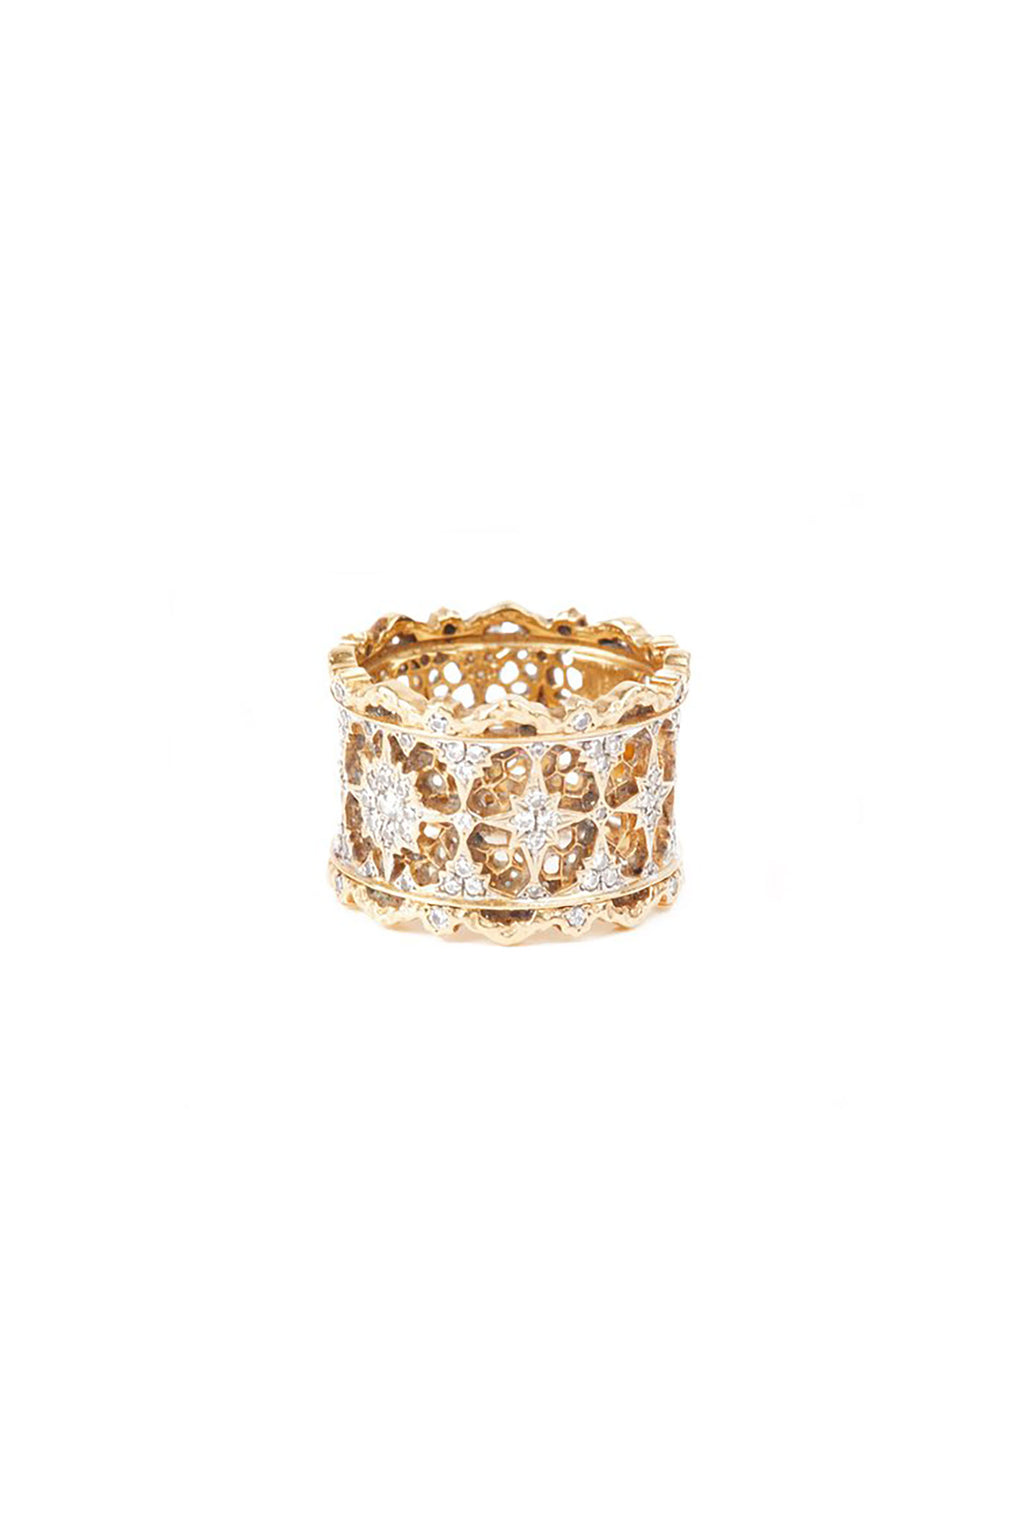 Thick 18KT Rose Gold Cutout Detail Ring in Layered Filagree Design